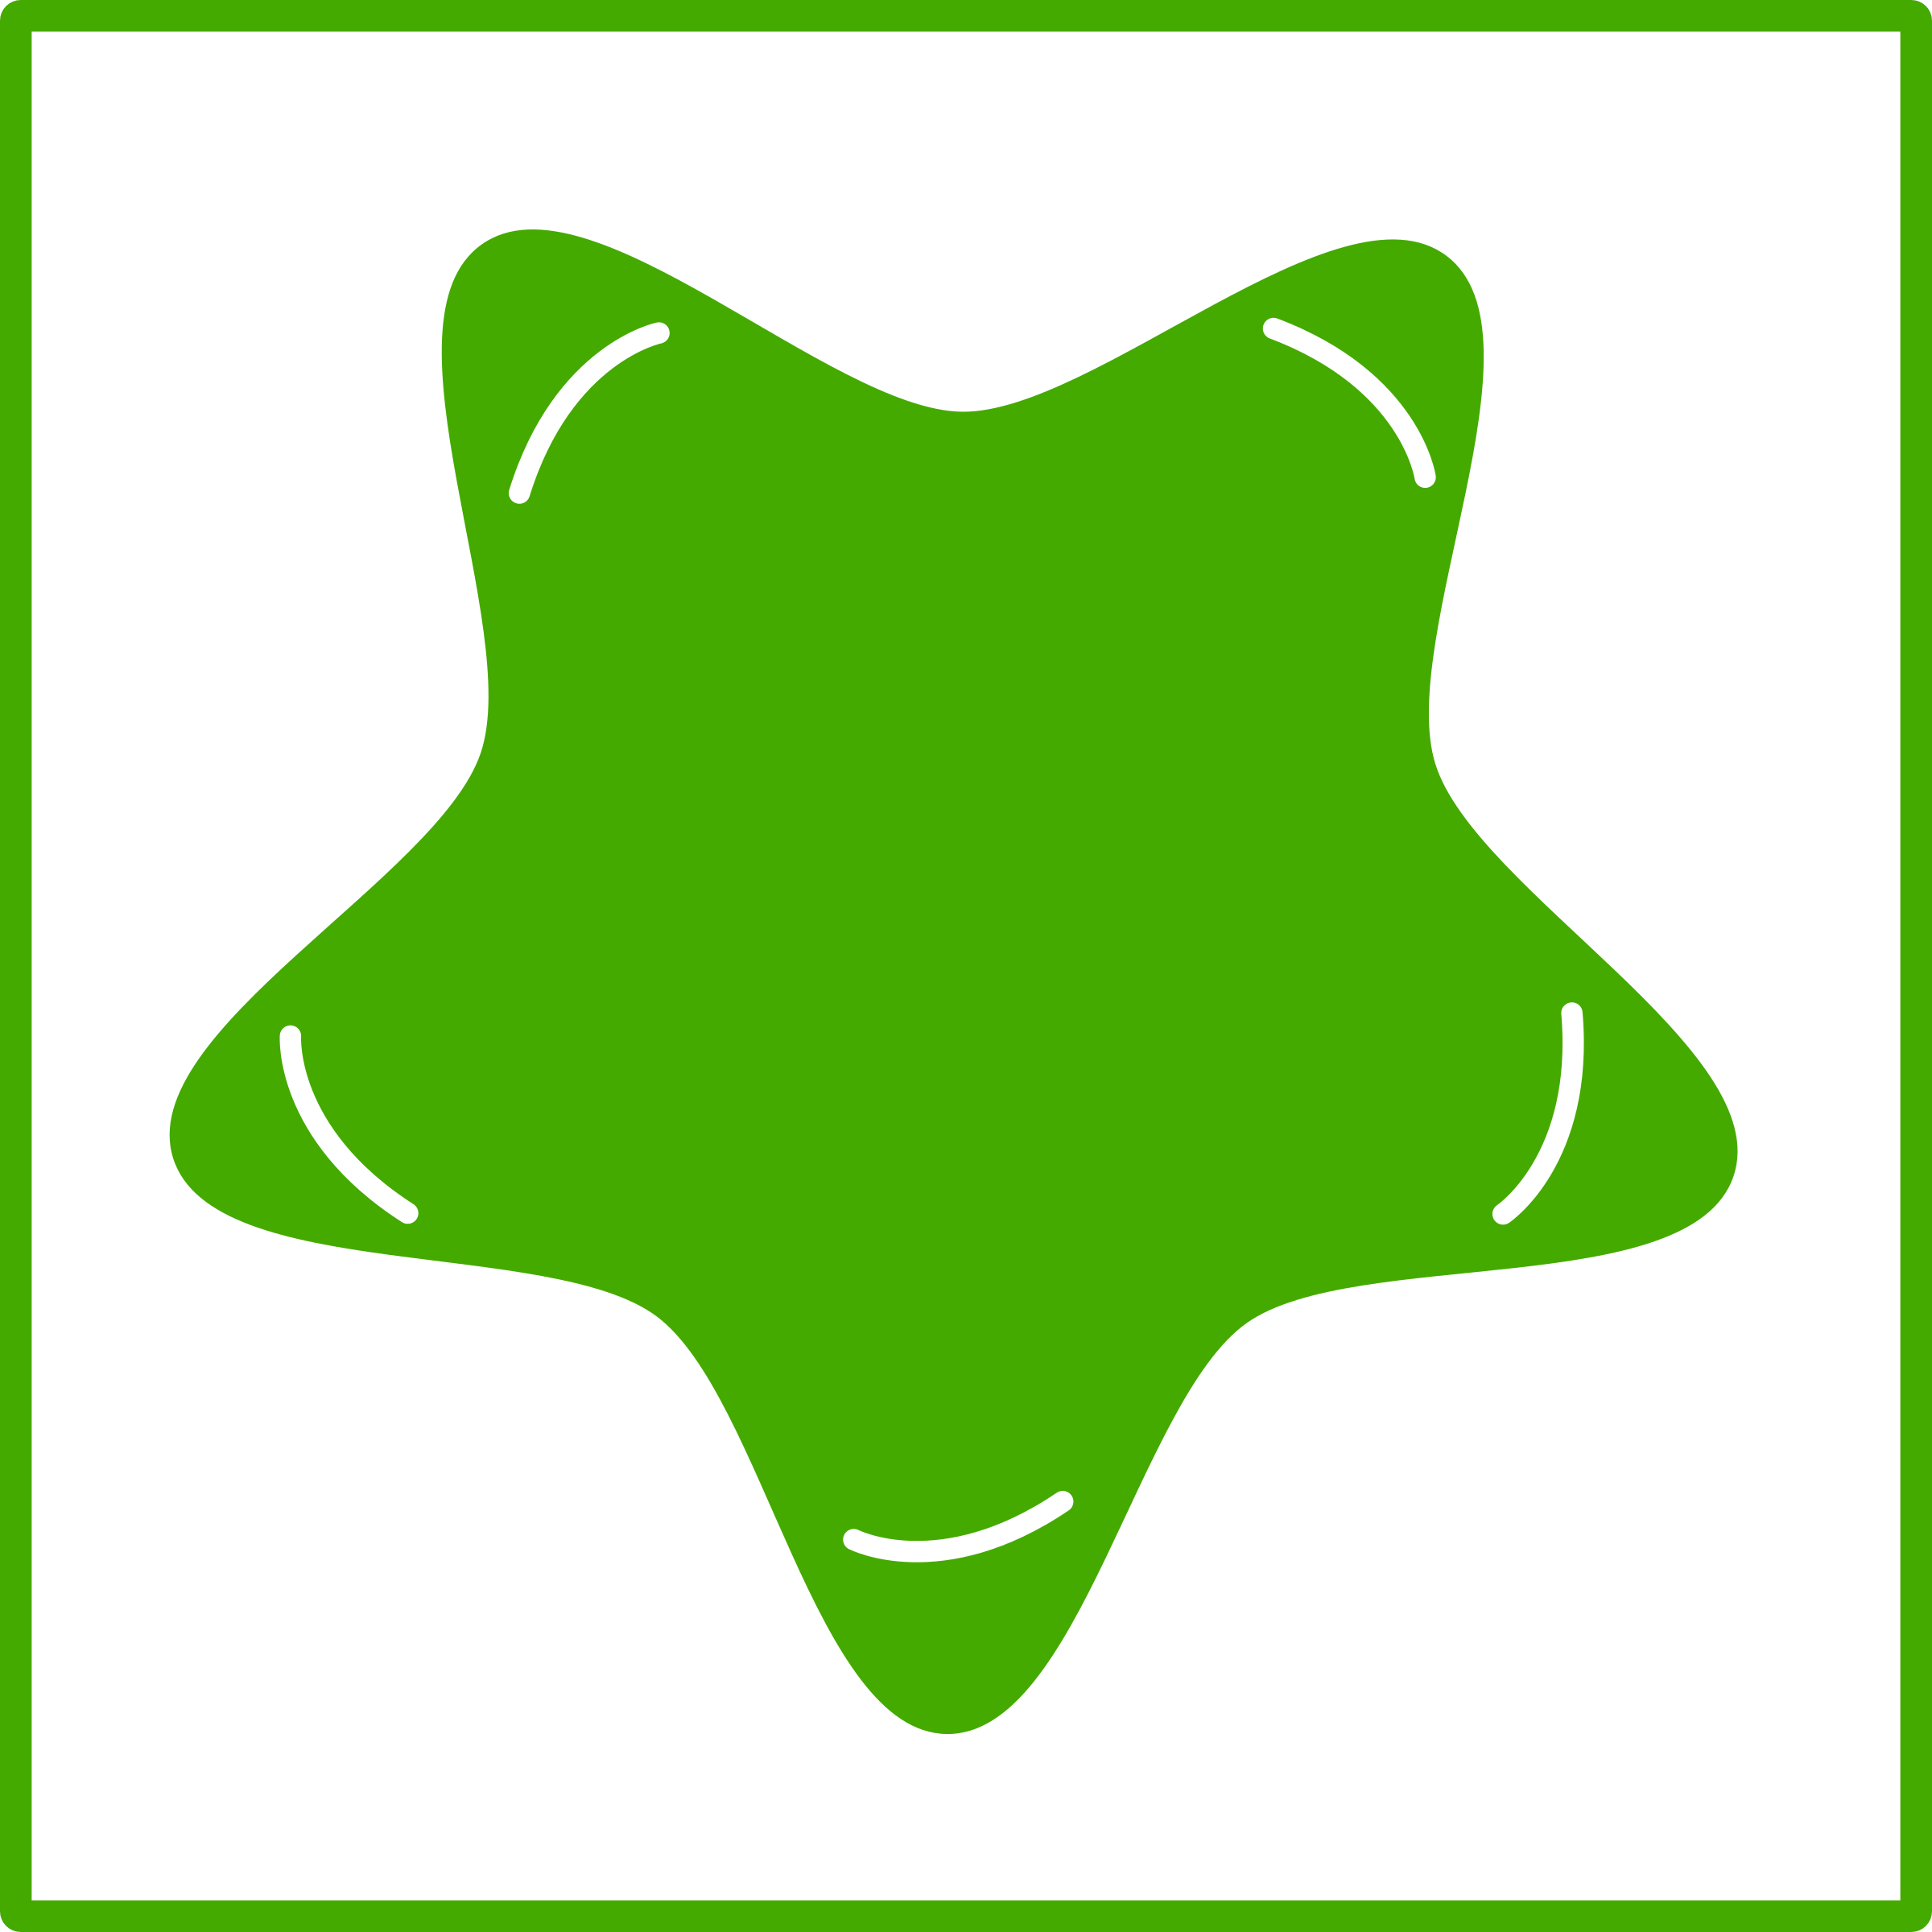 Green star clipart jpg library download Clipart - eco green star icon jpg library download